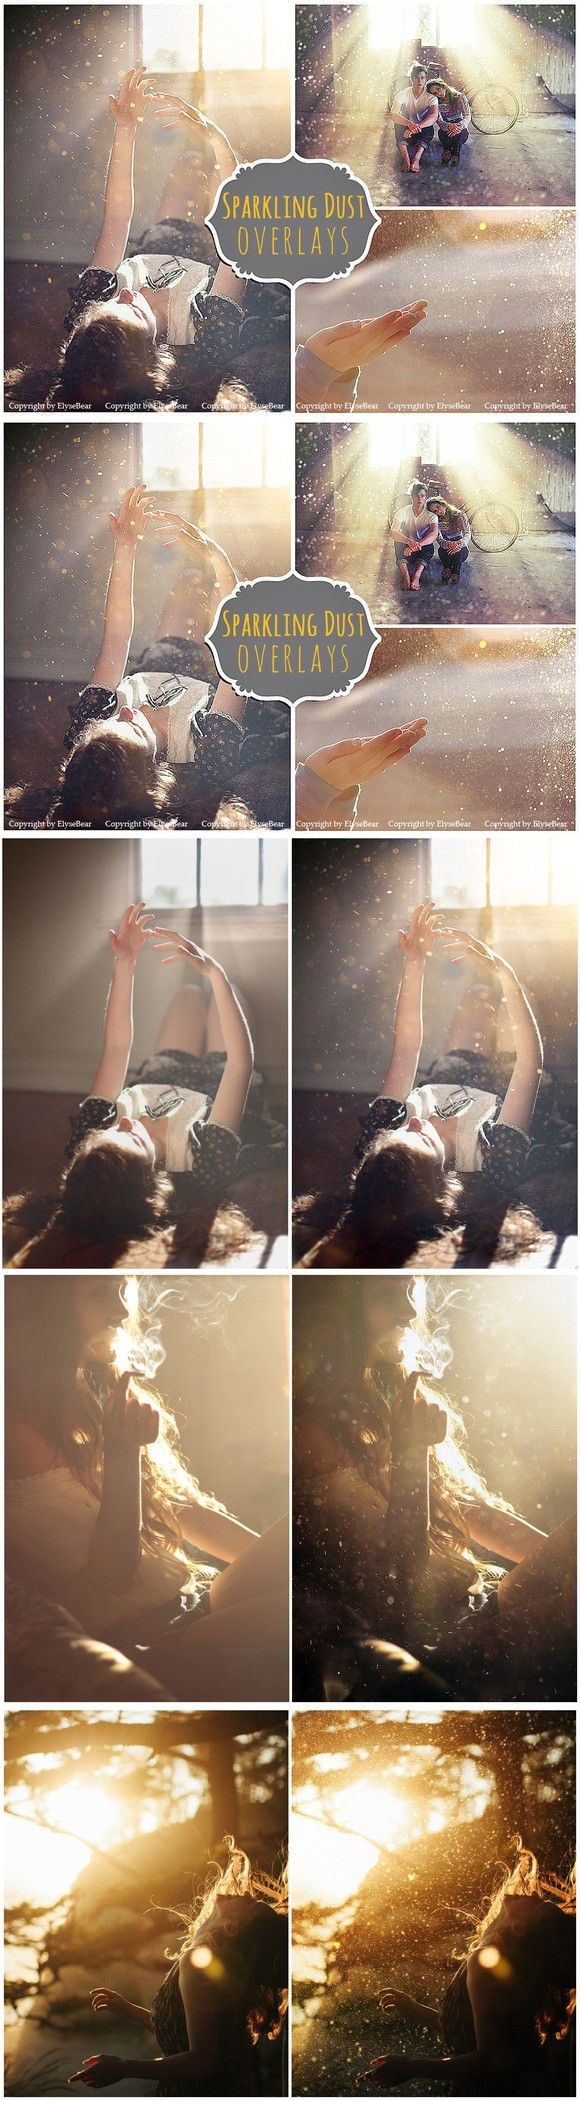 20 Sparkling Dust Photo Overlays JPG. Photoshop Actions. $10.00